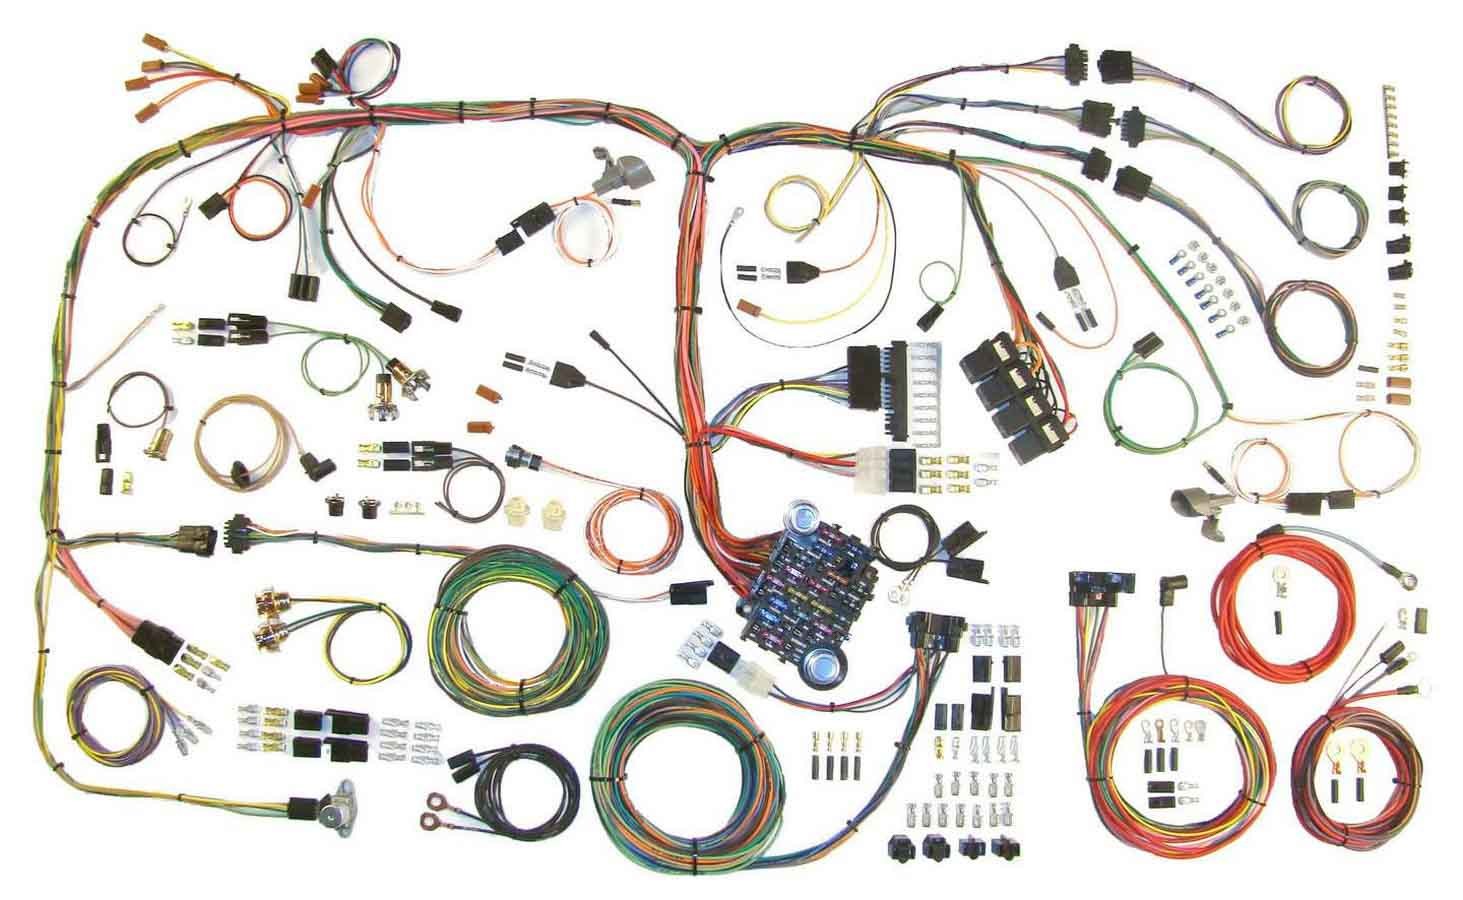 Classic Car Wiring Harness Diagram Library Tools 70 74 Challenger Complete